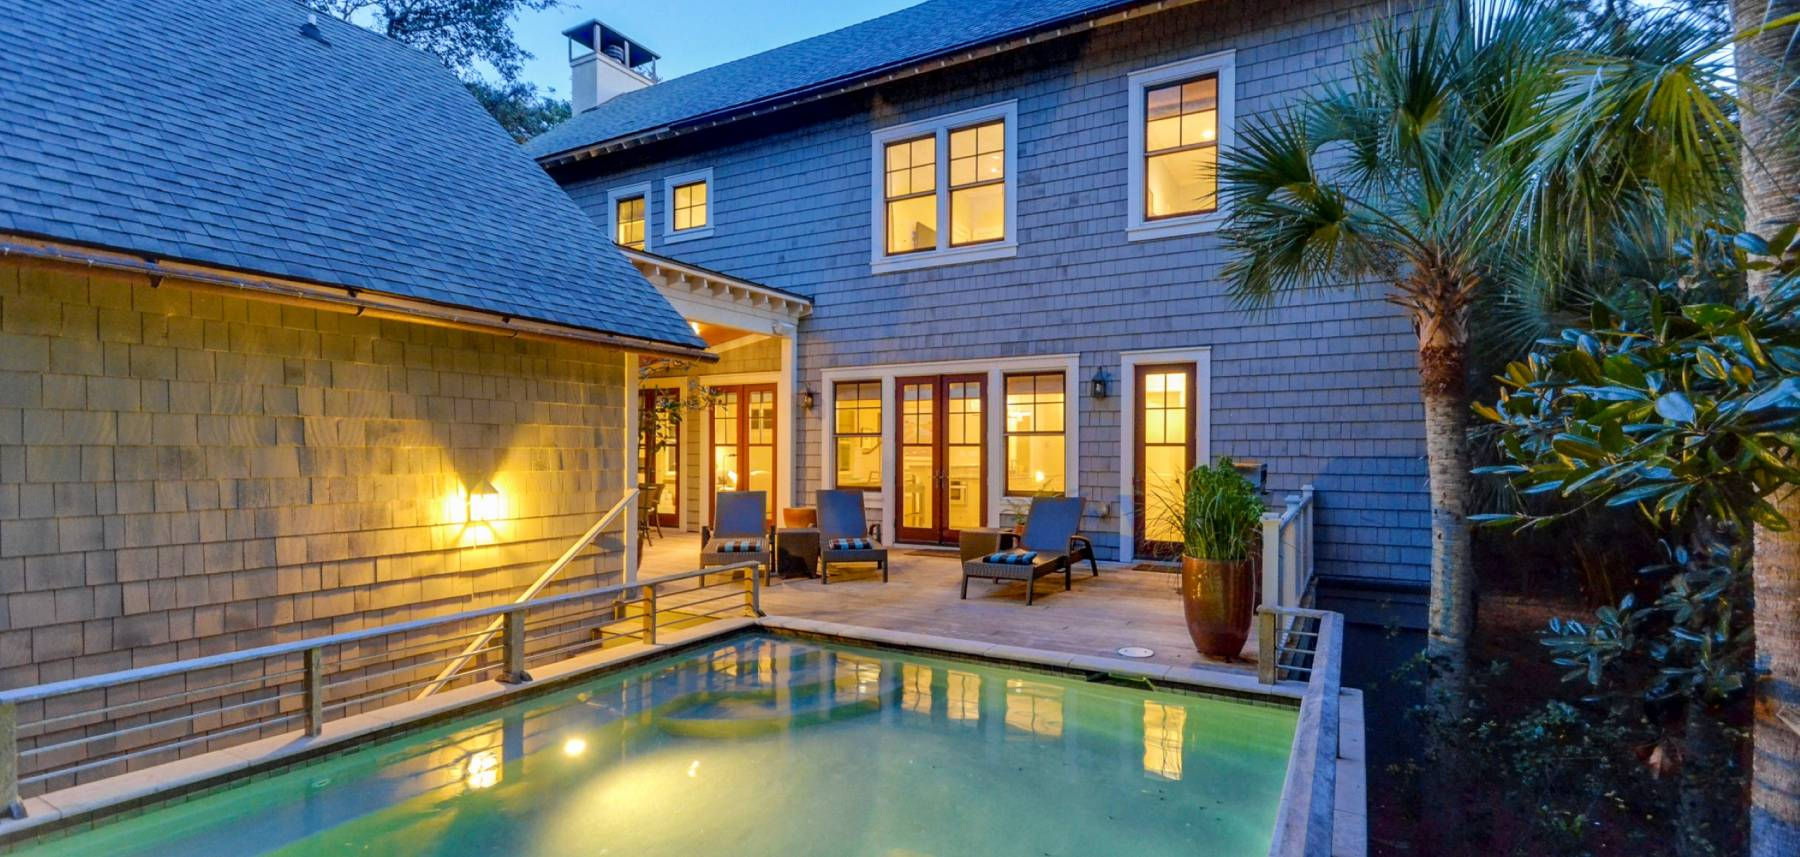 70 Forestay Court, Kiawah Island Vacation Rental